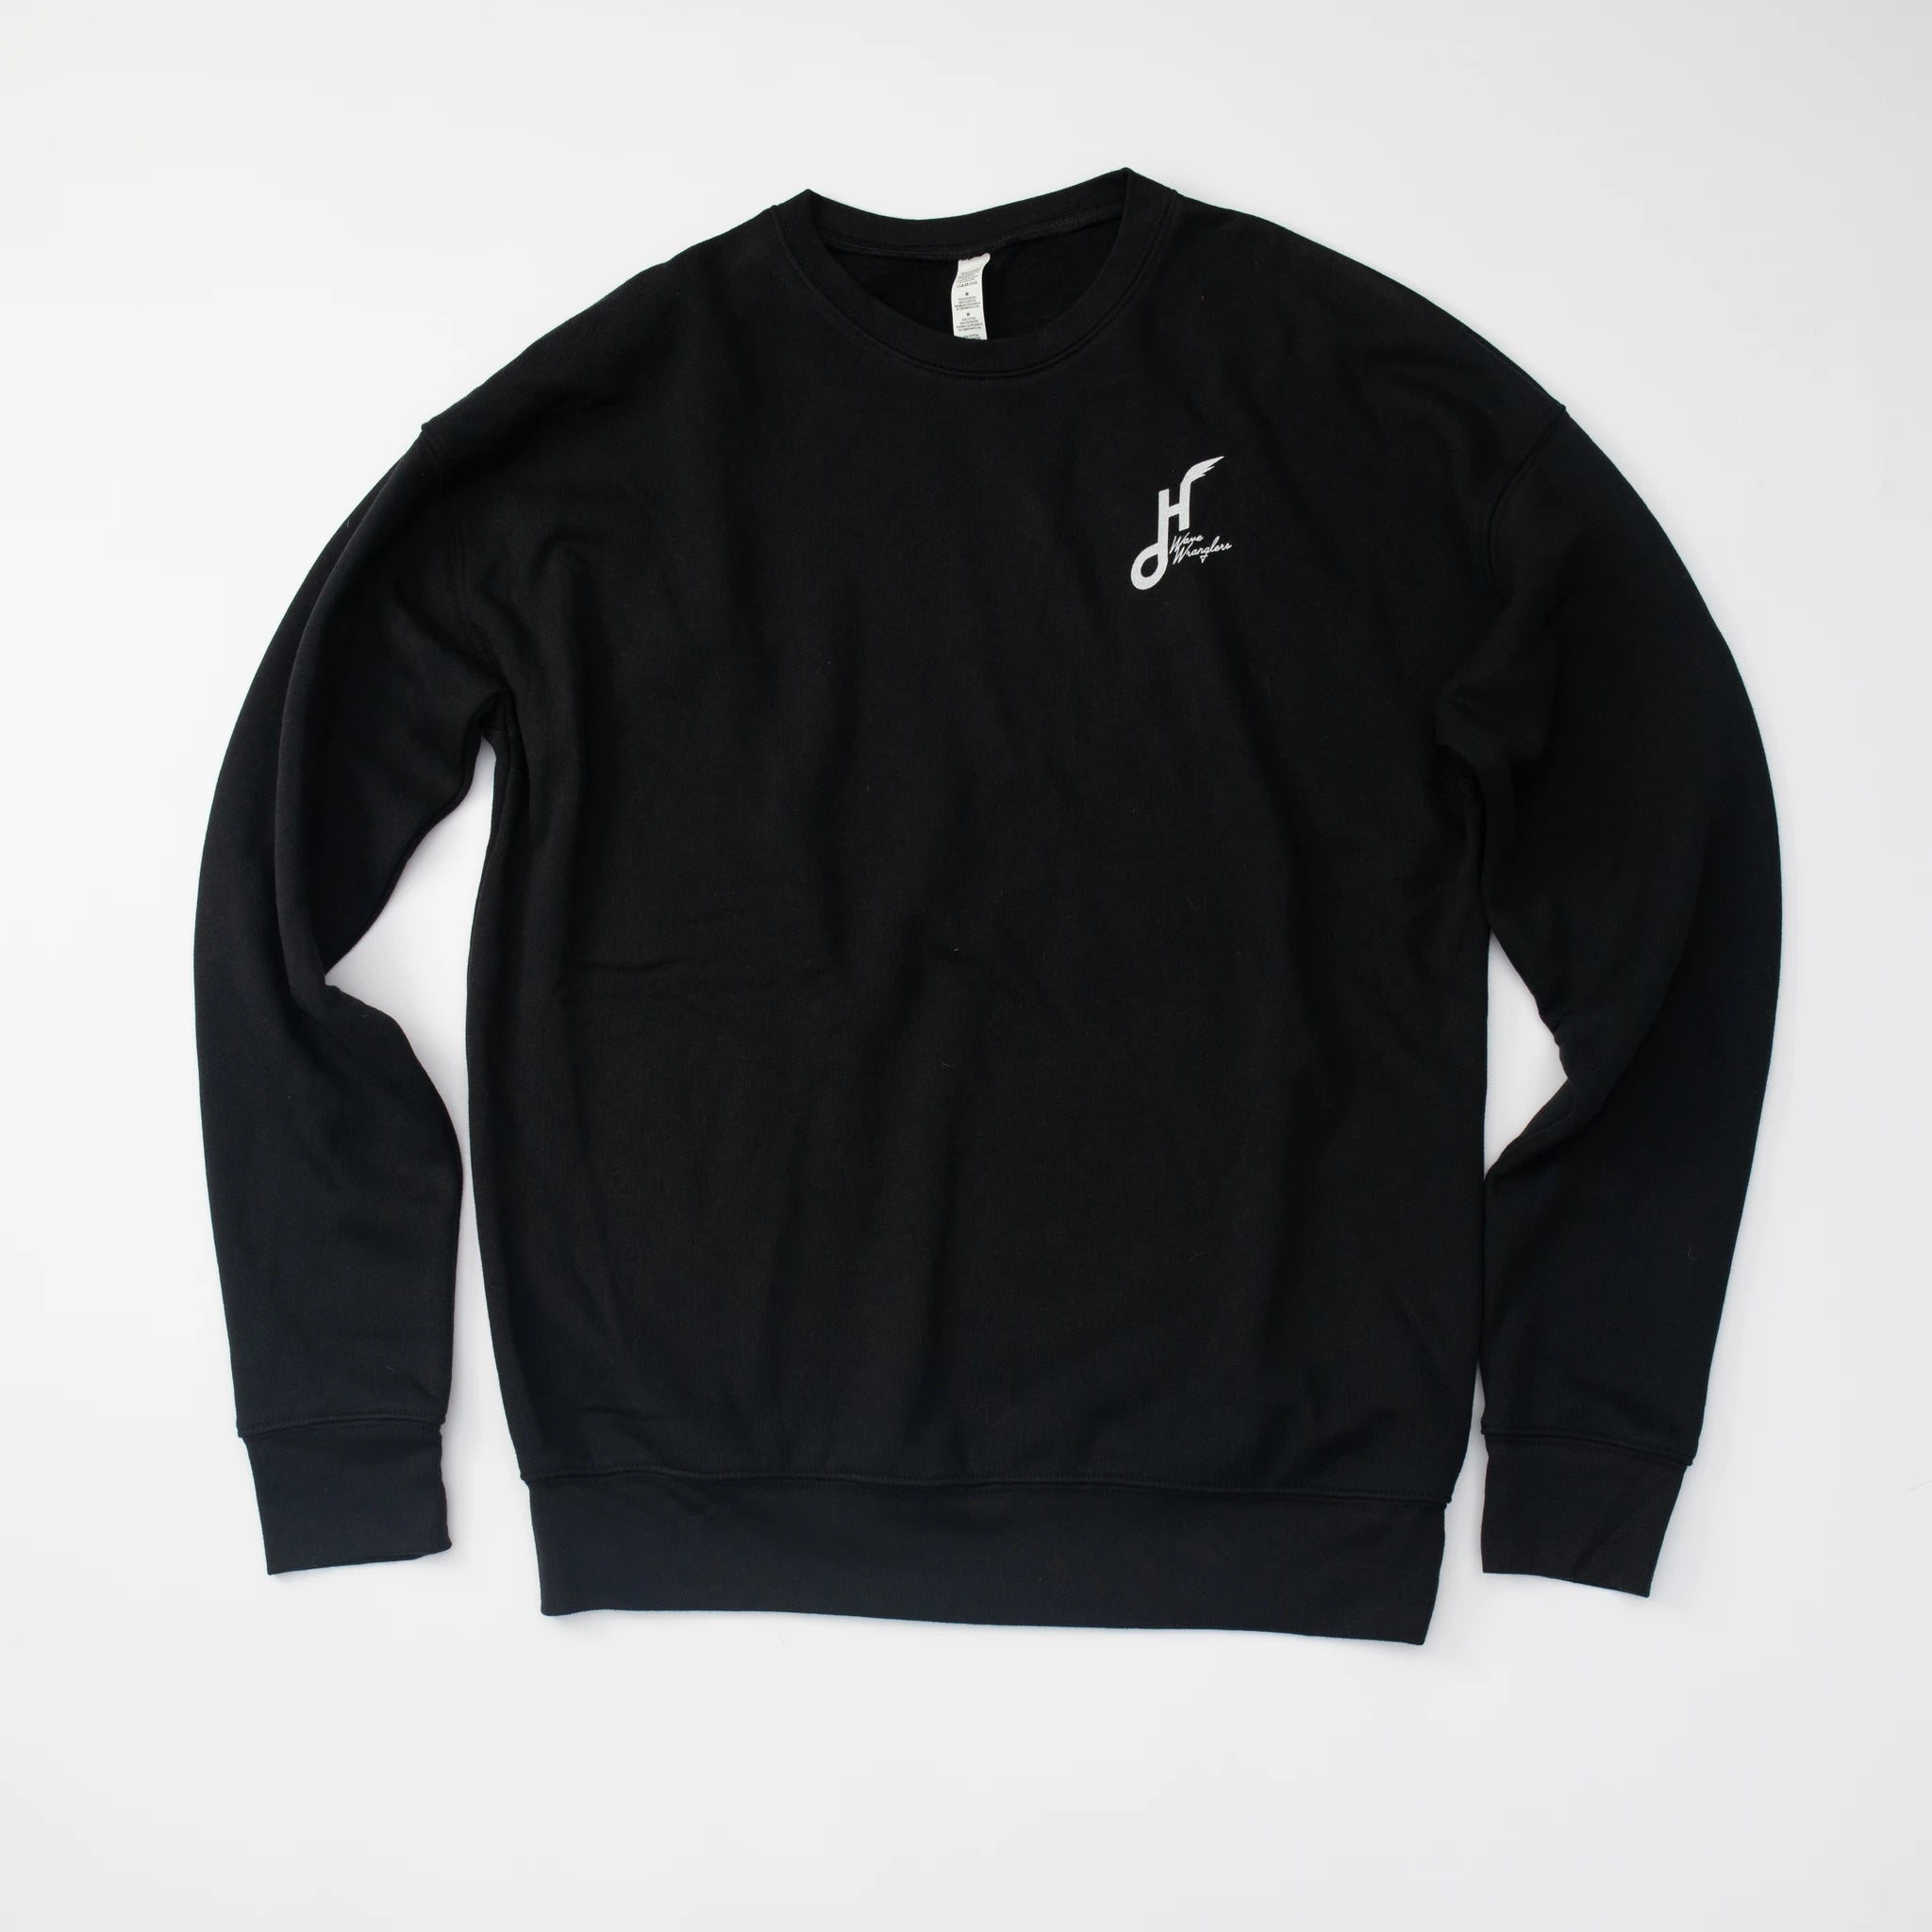 Hoy Wave Wranglers Sponge Fleece Sweater - Black